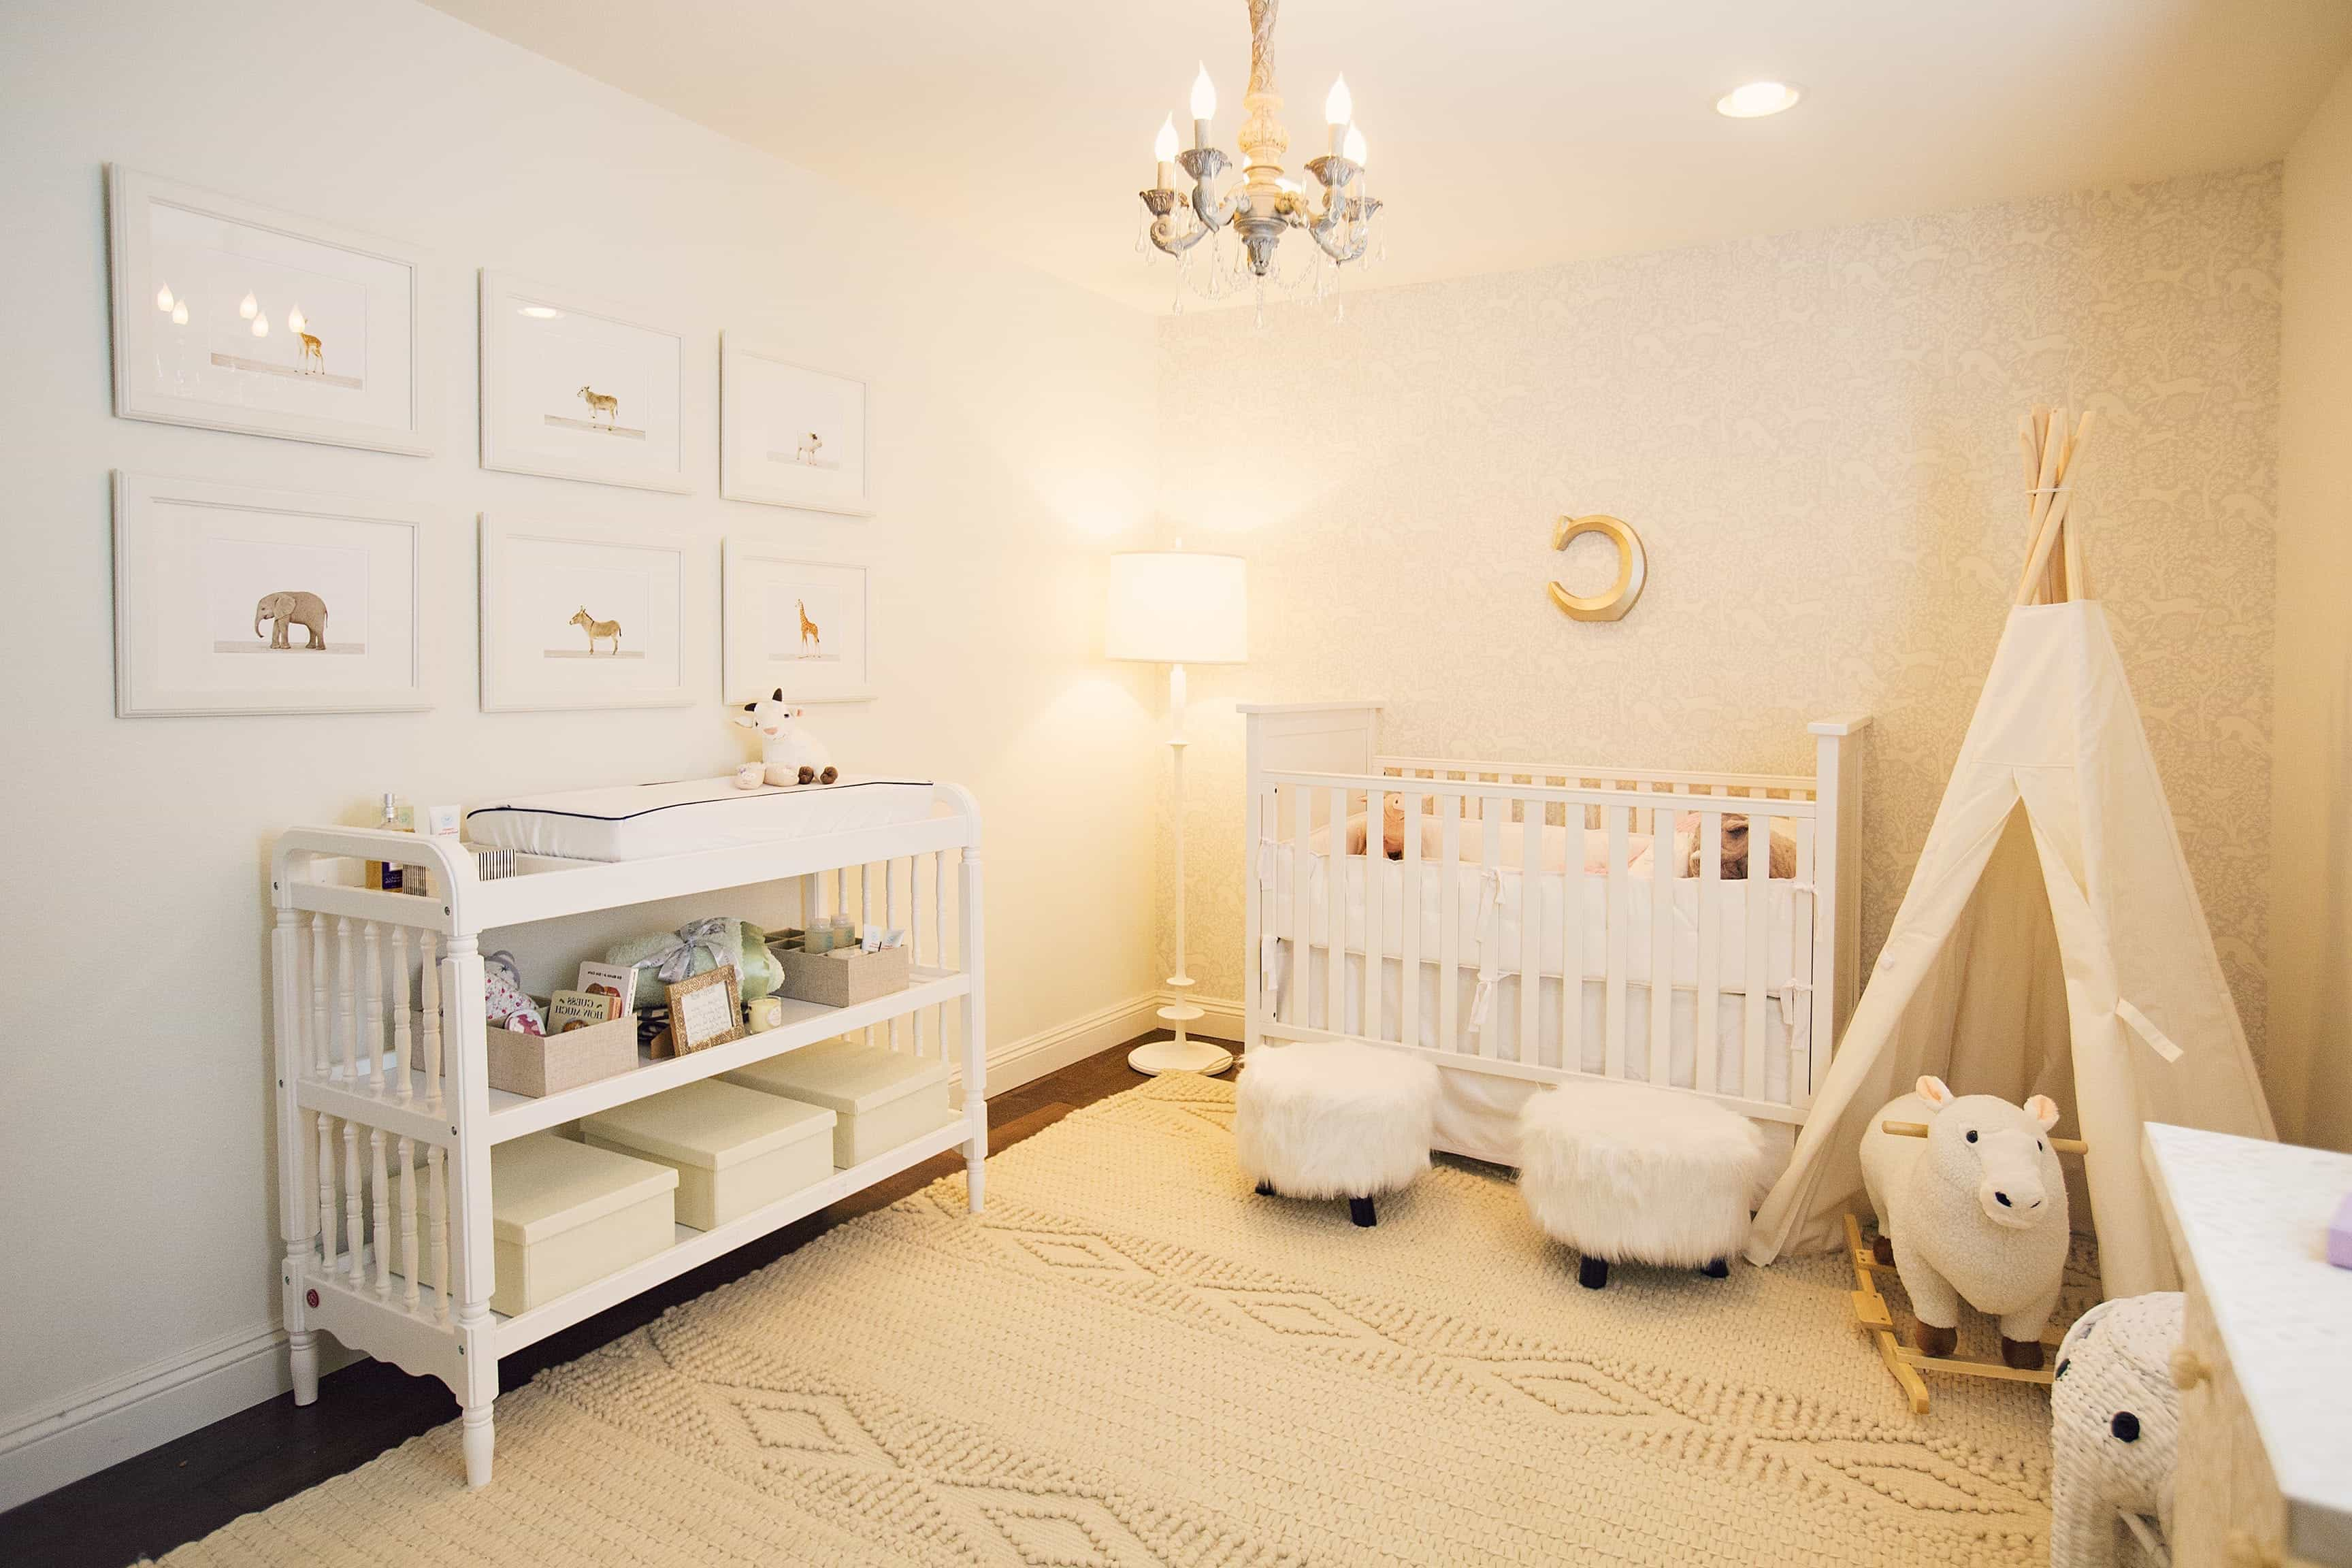 Modern White Nursery With Vintage Inspired Accents (Image 23 of 33)